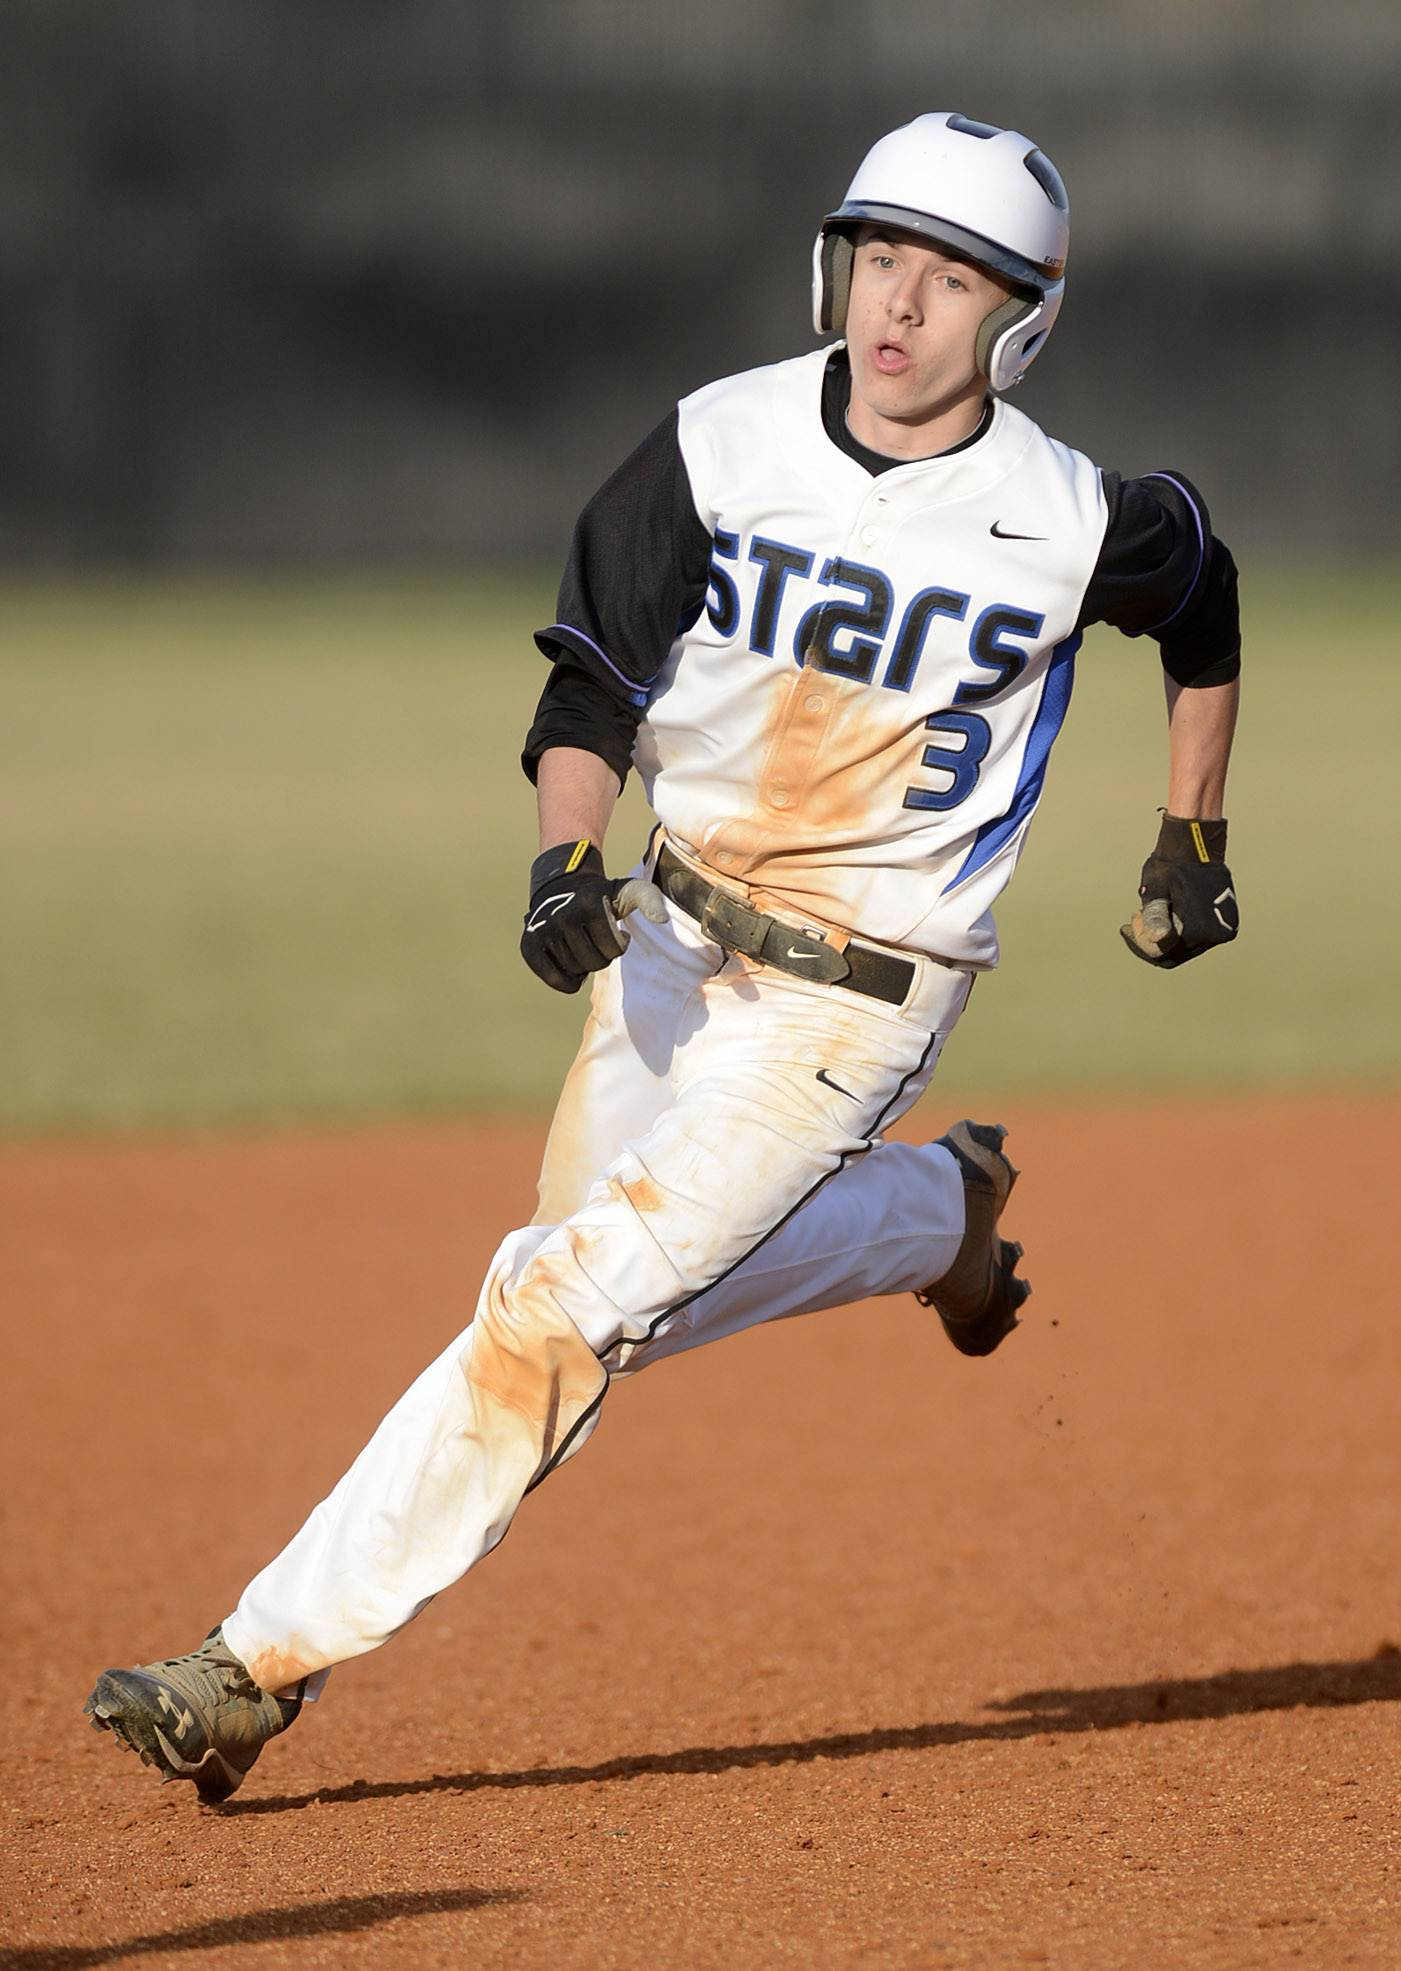 St. Charles North's Jake Jozefowicz runs to third base on Friday, April 11.